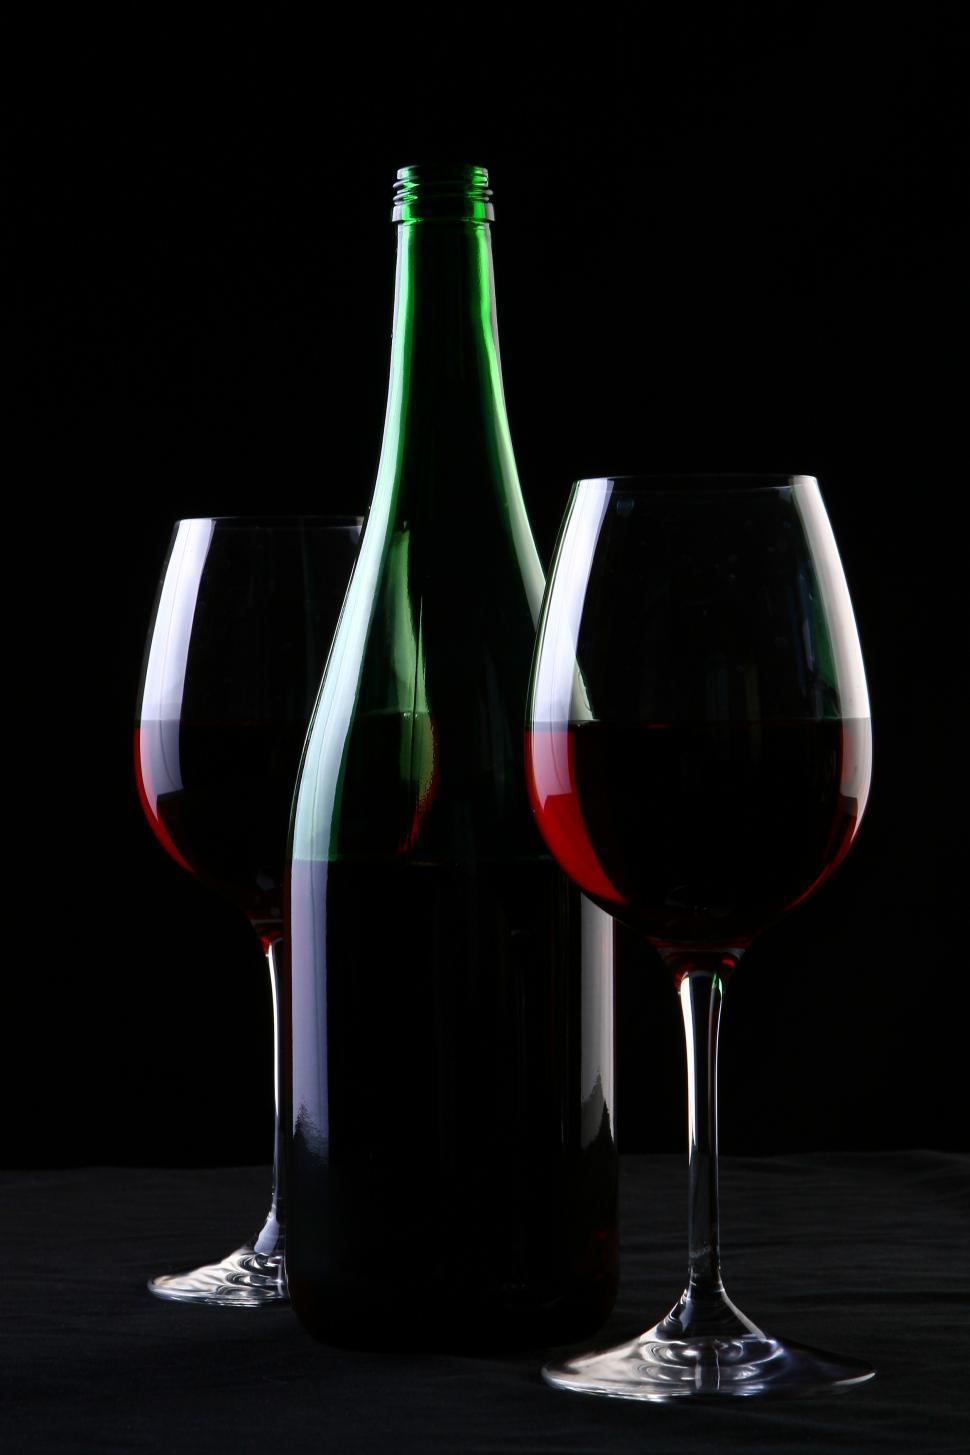 Download Free Stock Photo of a two glasses of red wine on black